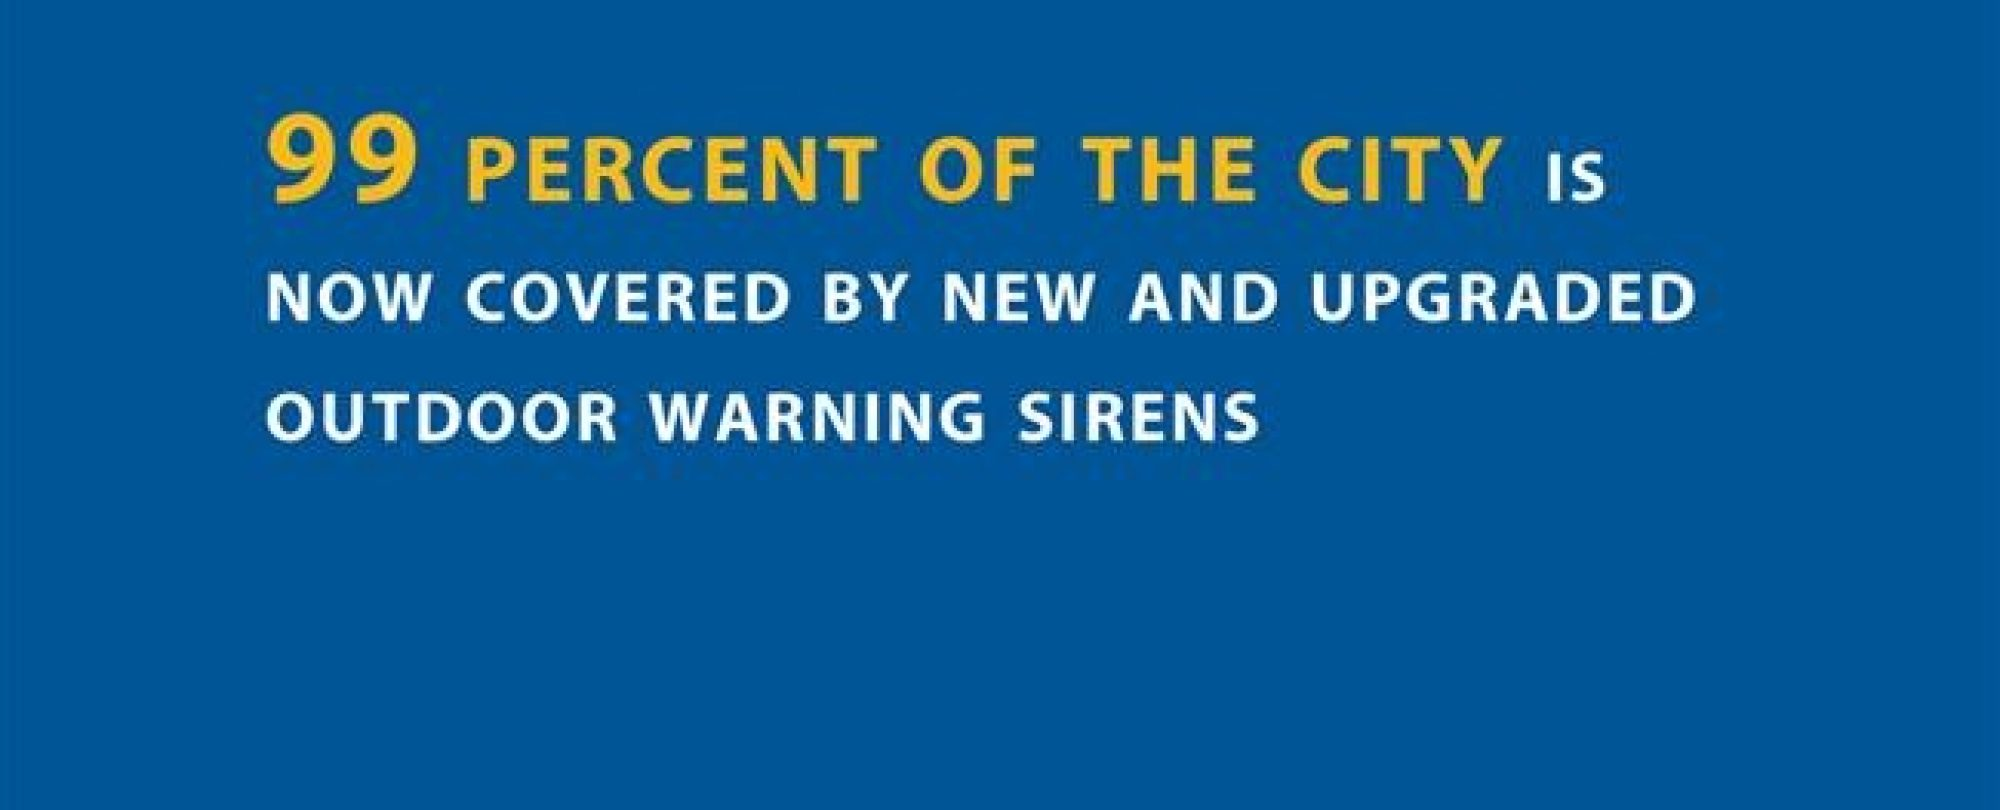 99 percent of the city is now covered by new and upgraded outdoor warning sirens.